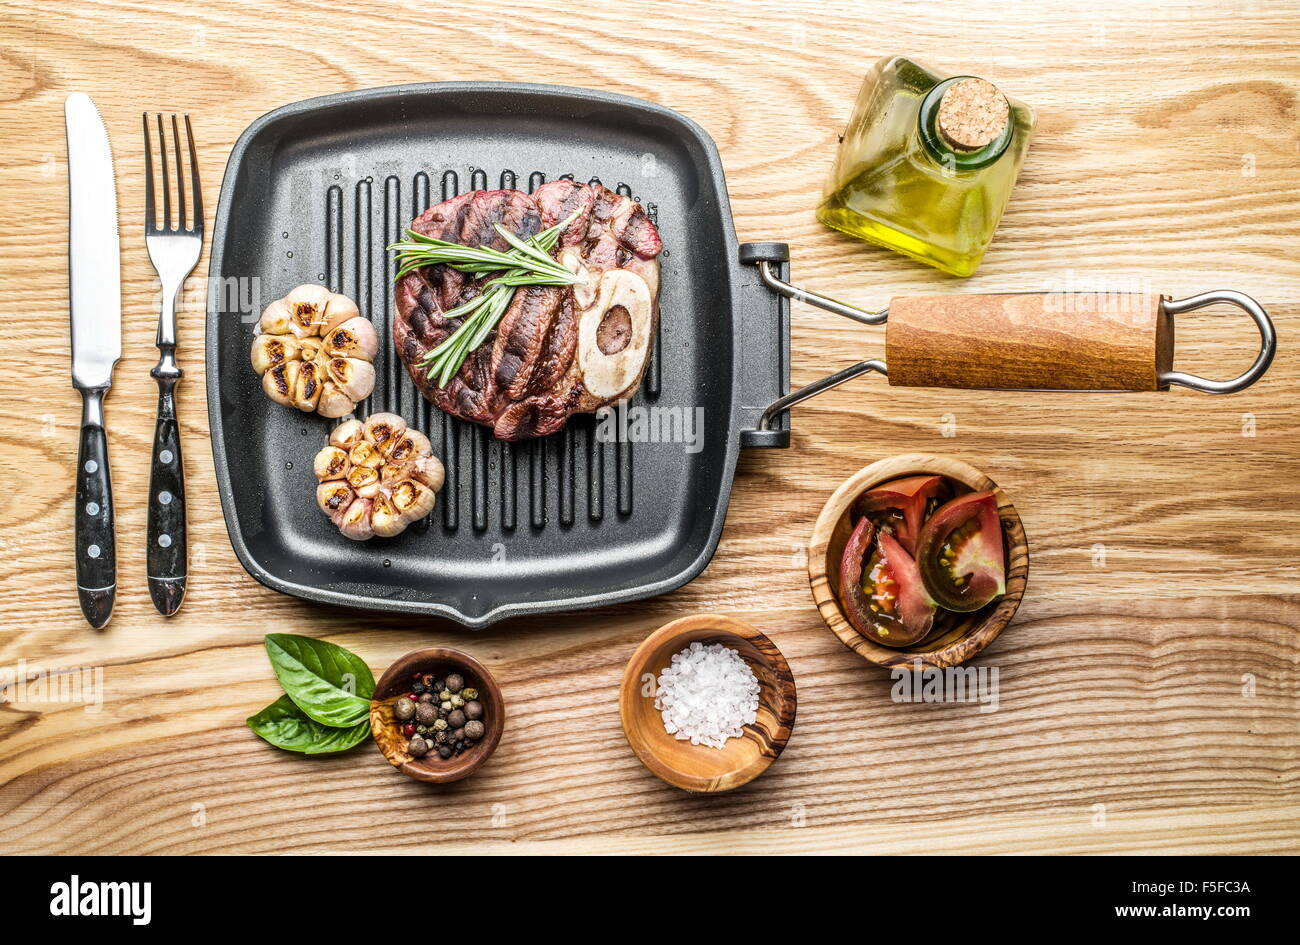 Beef steak with spices on pan on wooden table. - Stock Image